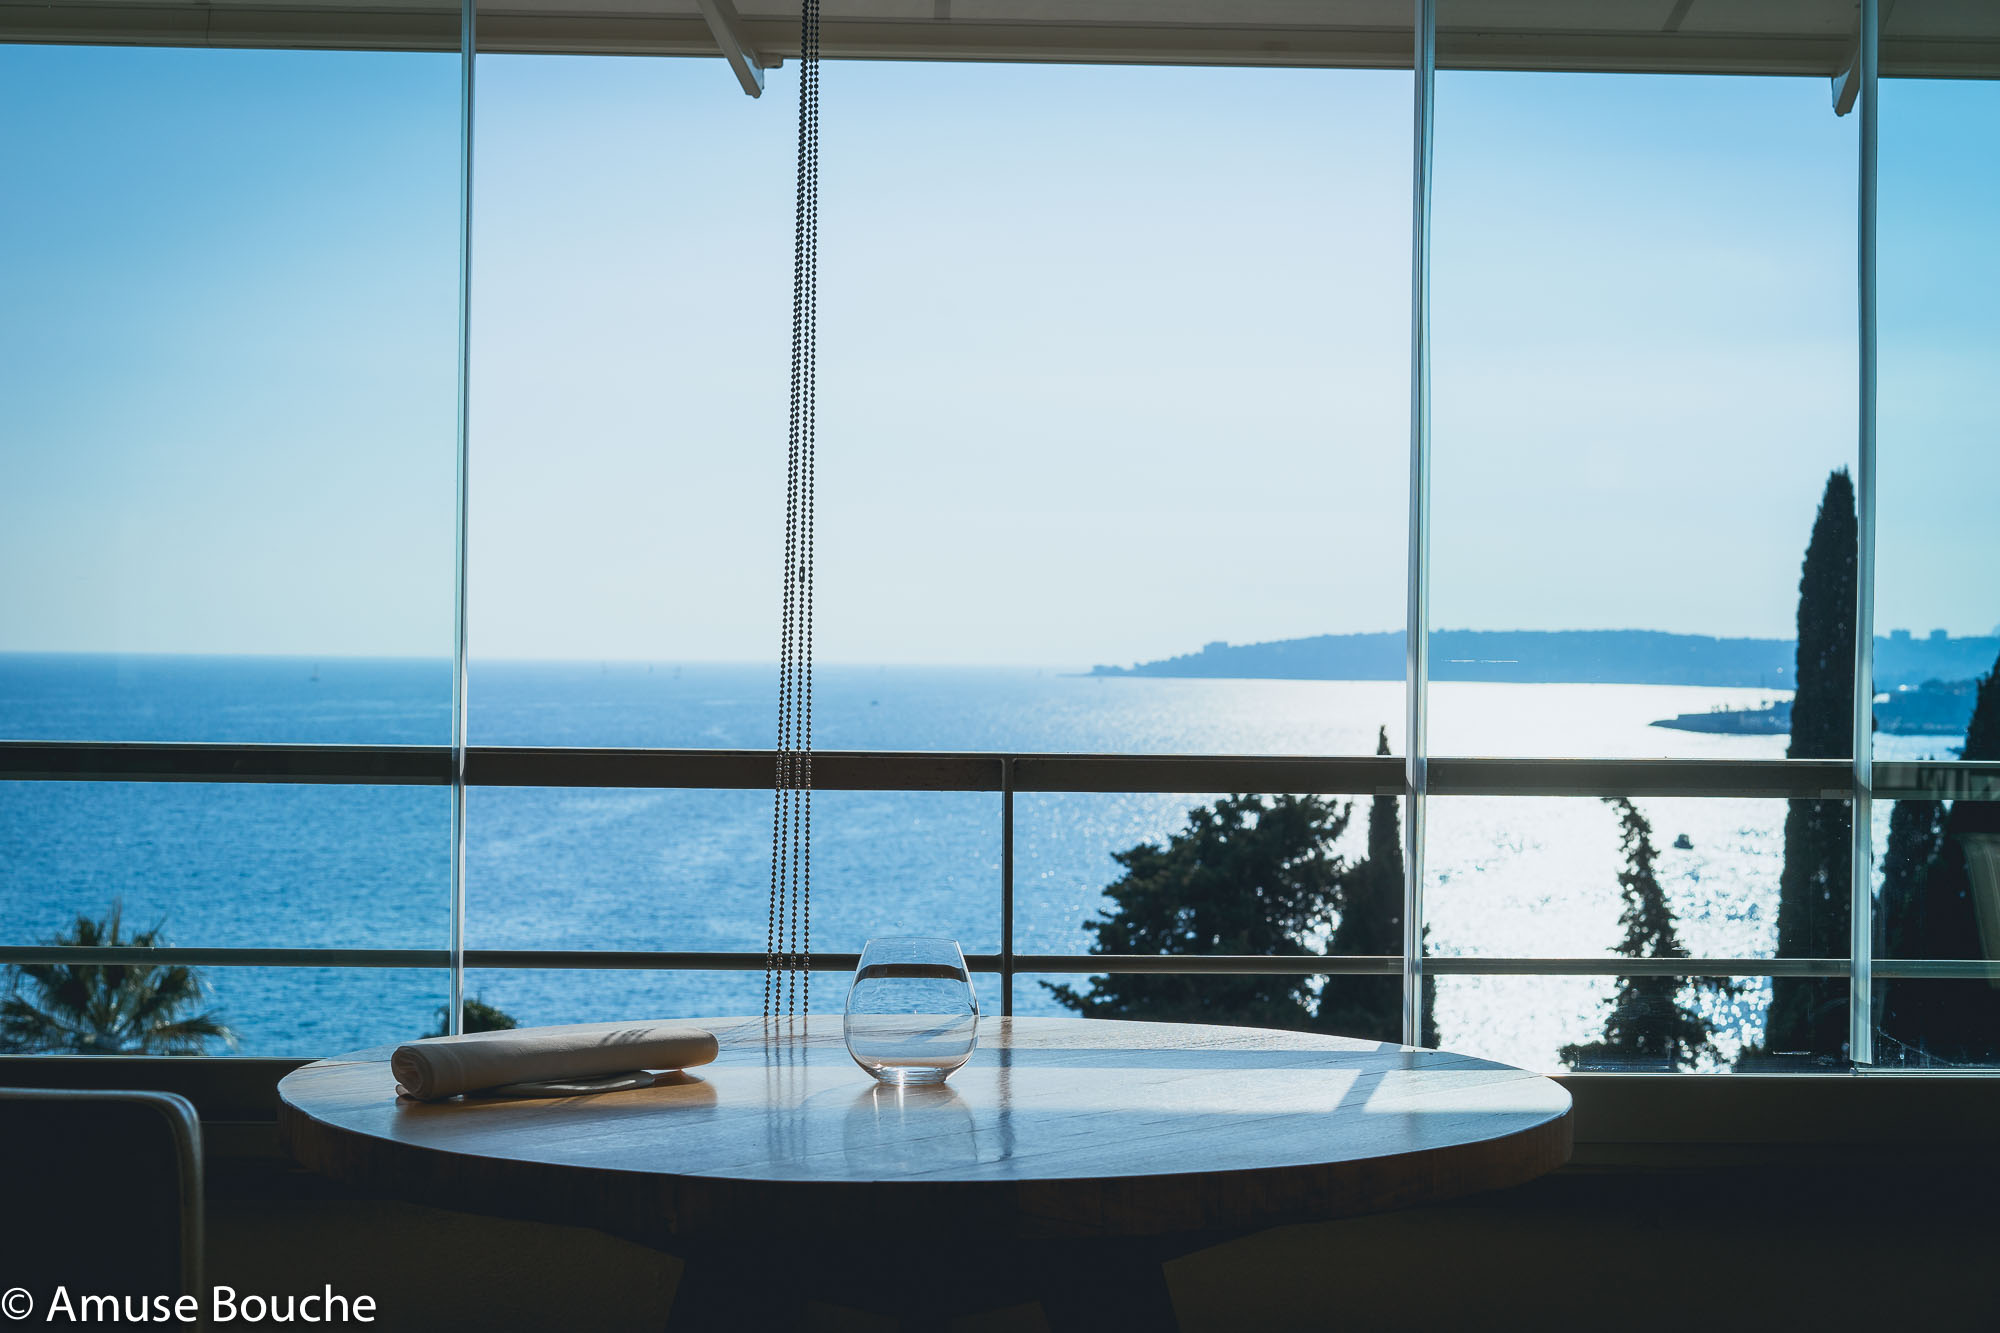 Restaurant Mirazur Franta World's 50 Best View